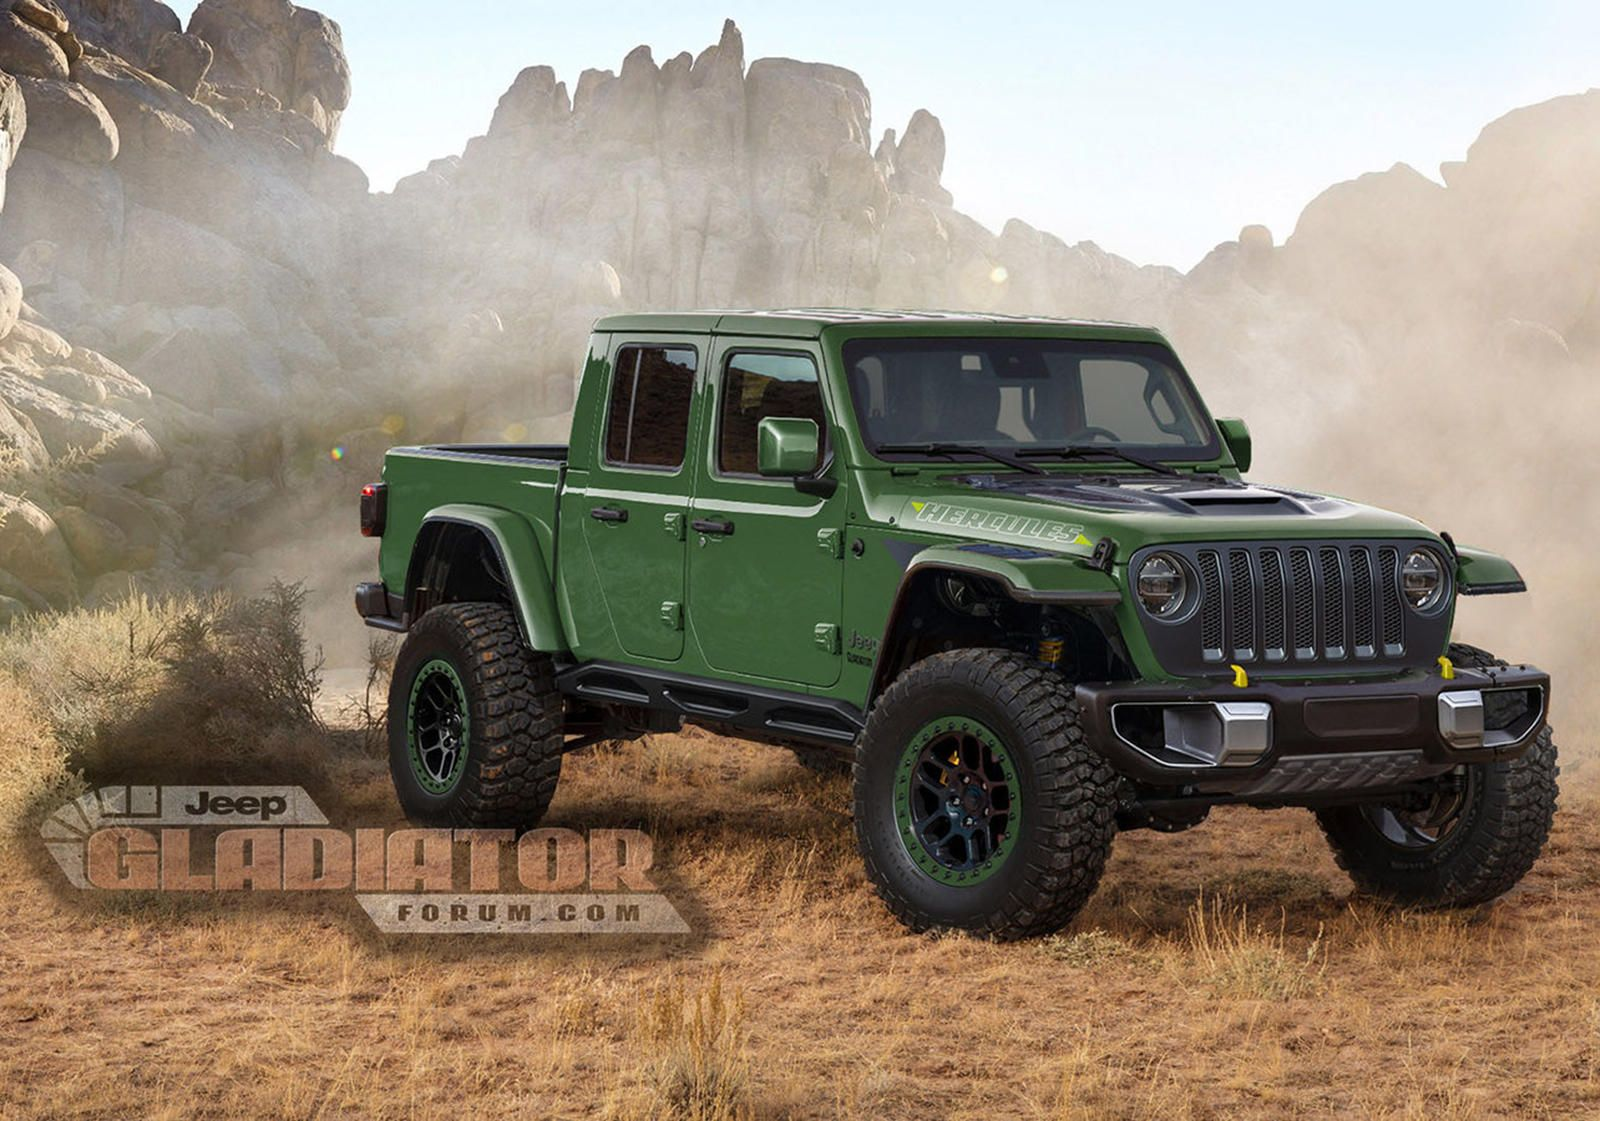 Jeep Gladiator Hercules Is Coming To Battle The Ford Raptor Jeep Gladiator Jeep Lifted Jeep